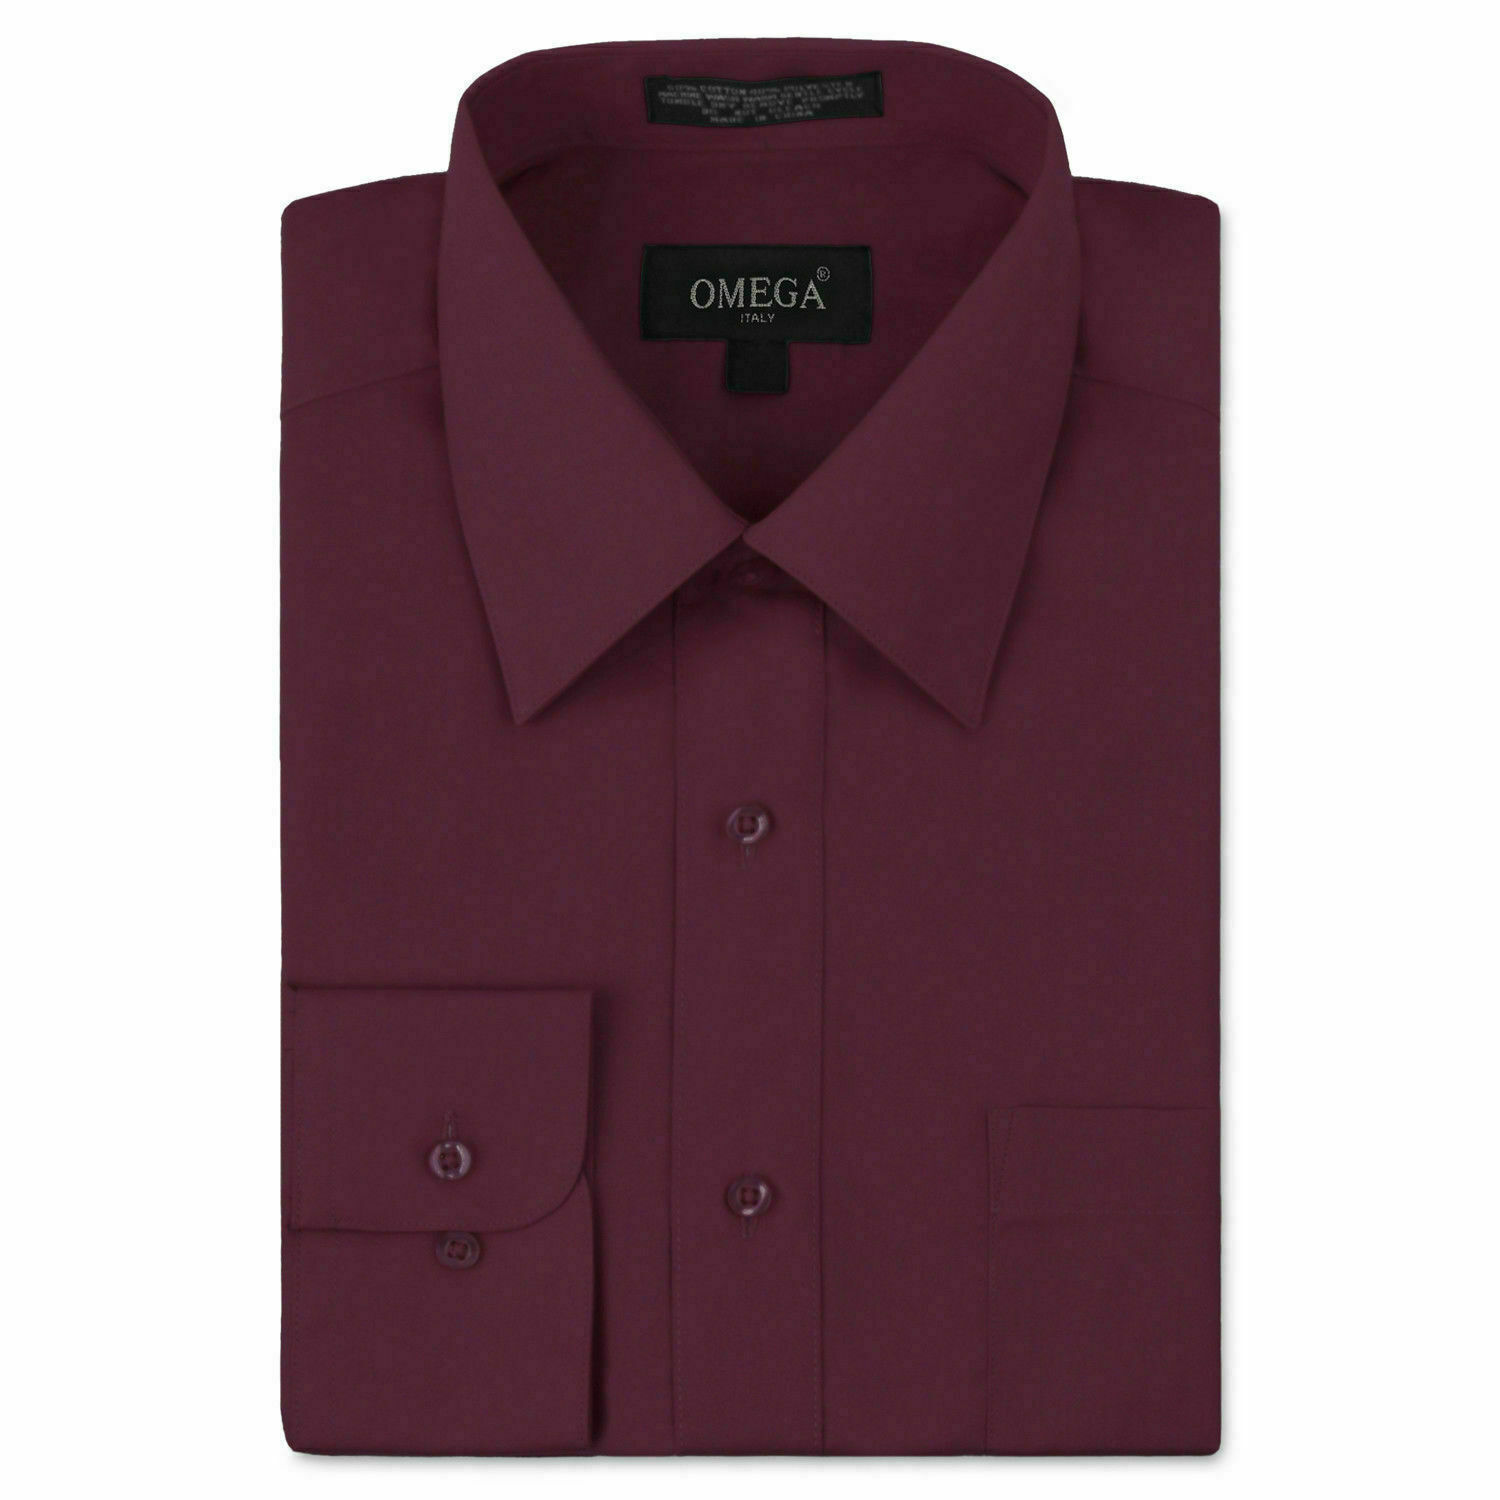 Omega Italy Men Burgundy Classic Fit Standard Cuff Solid Dress Shirt - XL